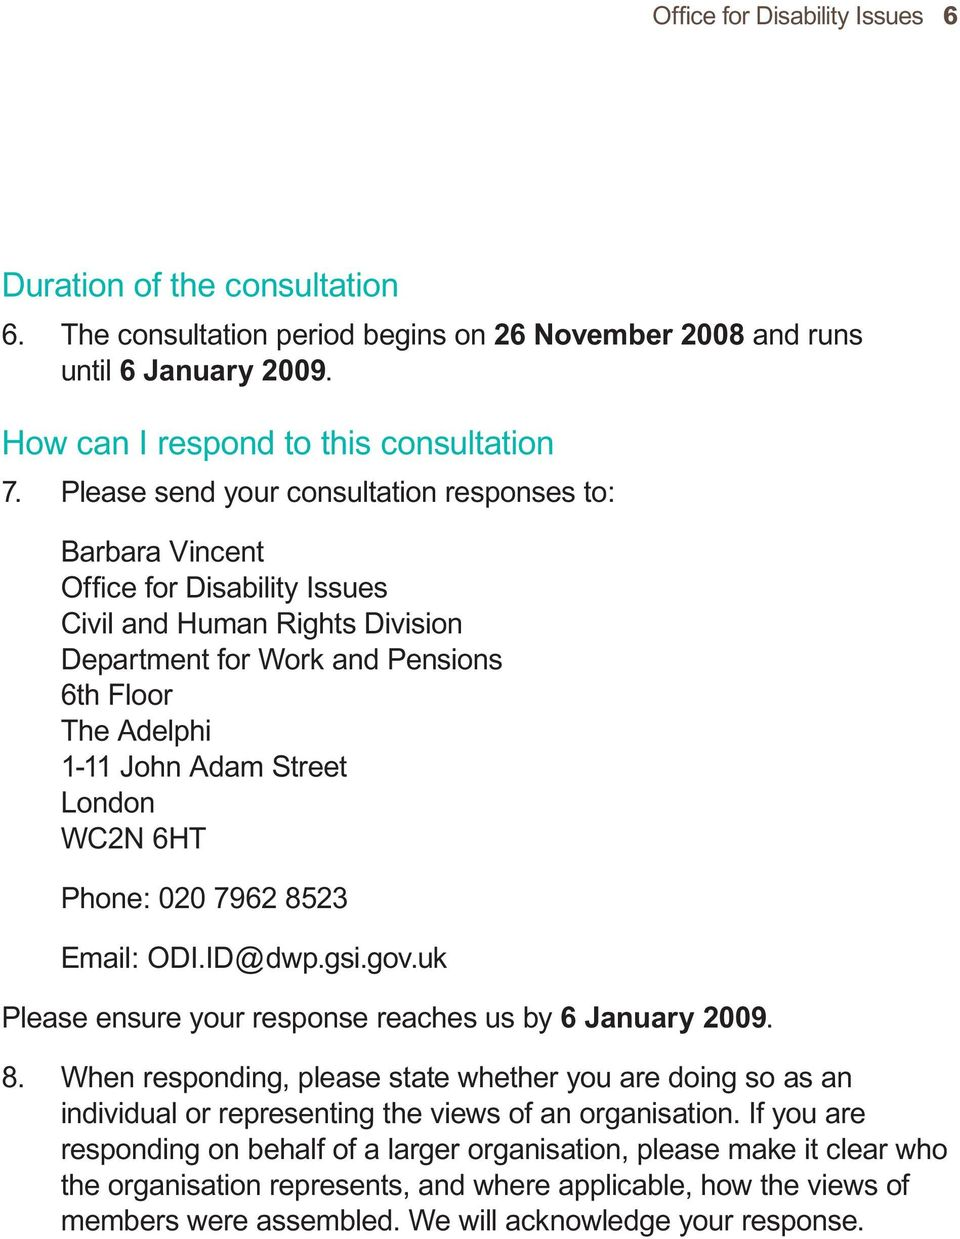 London WC2N 6HT Phone: 020 7962 8523 Email: ODI.ID@dwp.gsi.gov.uk Please ensure your response reaches us by 6 January 2009. 8. When responding, please state whether you are doing so as an individual or representing the views of an organisation.